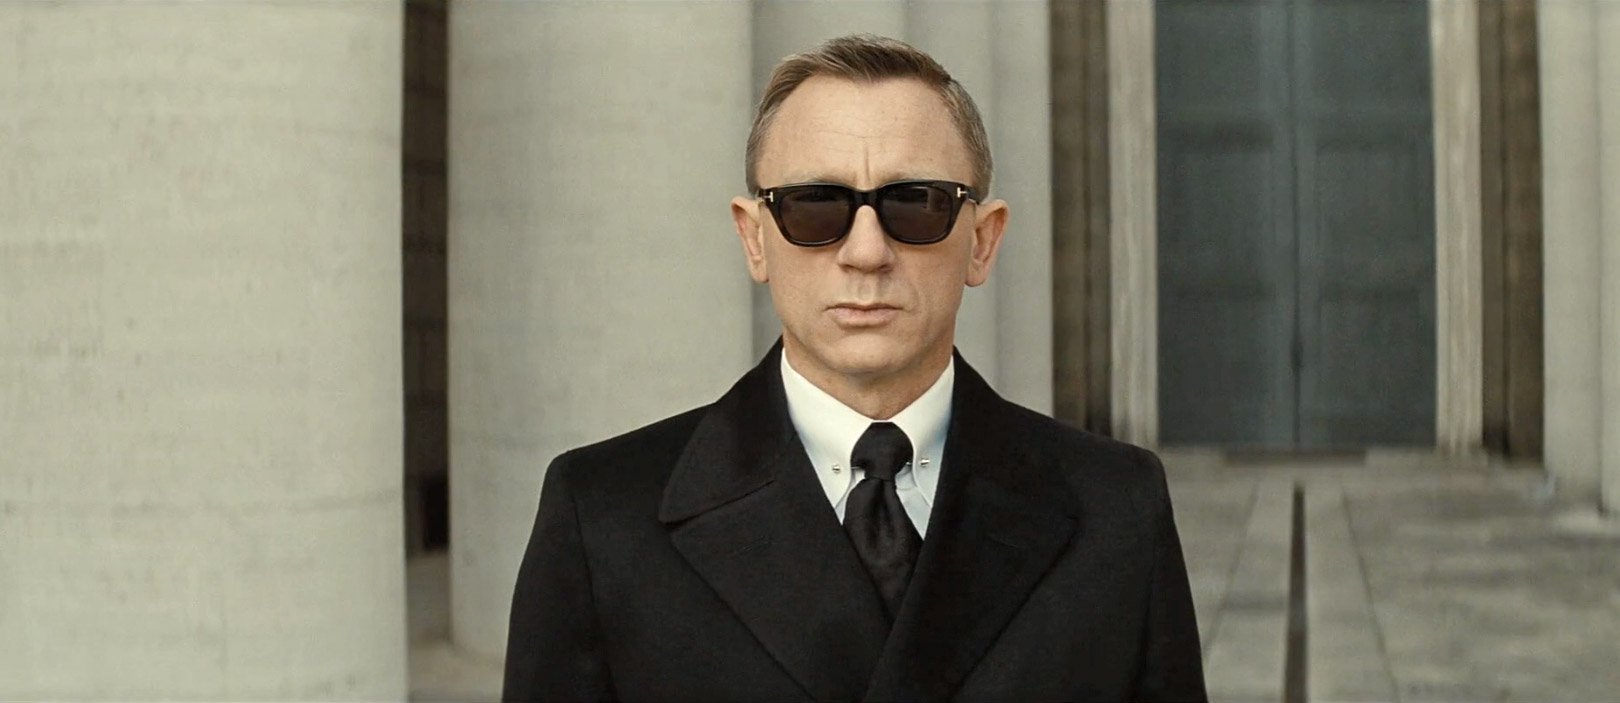 James Bond Tom Ford Sunglasses  black bridge coat sunglasses and gloves in spectre the suits of